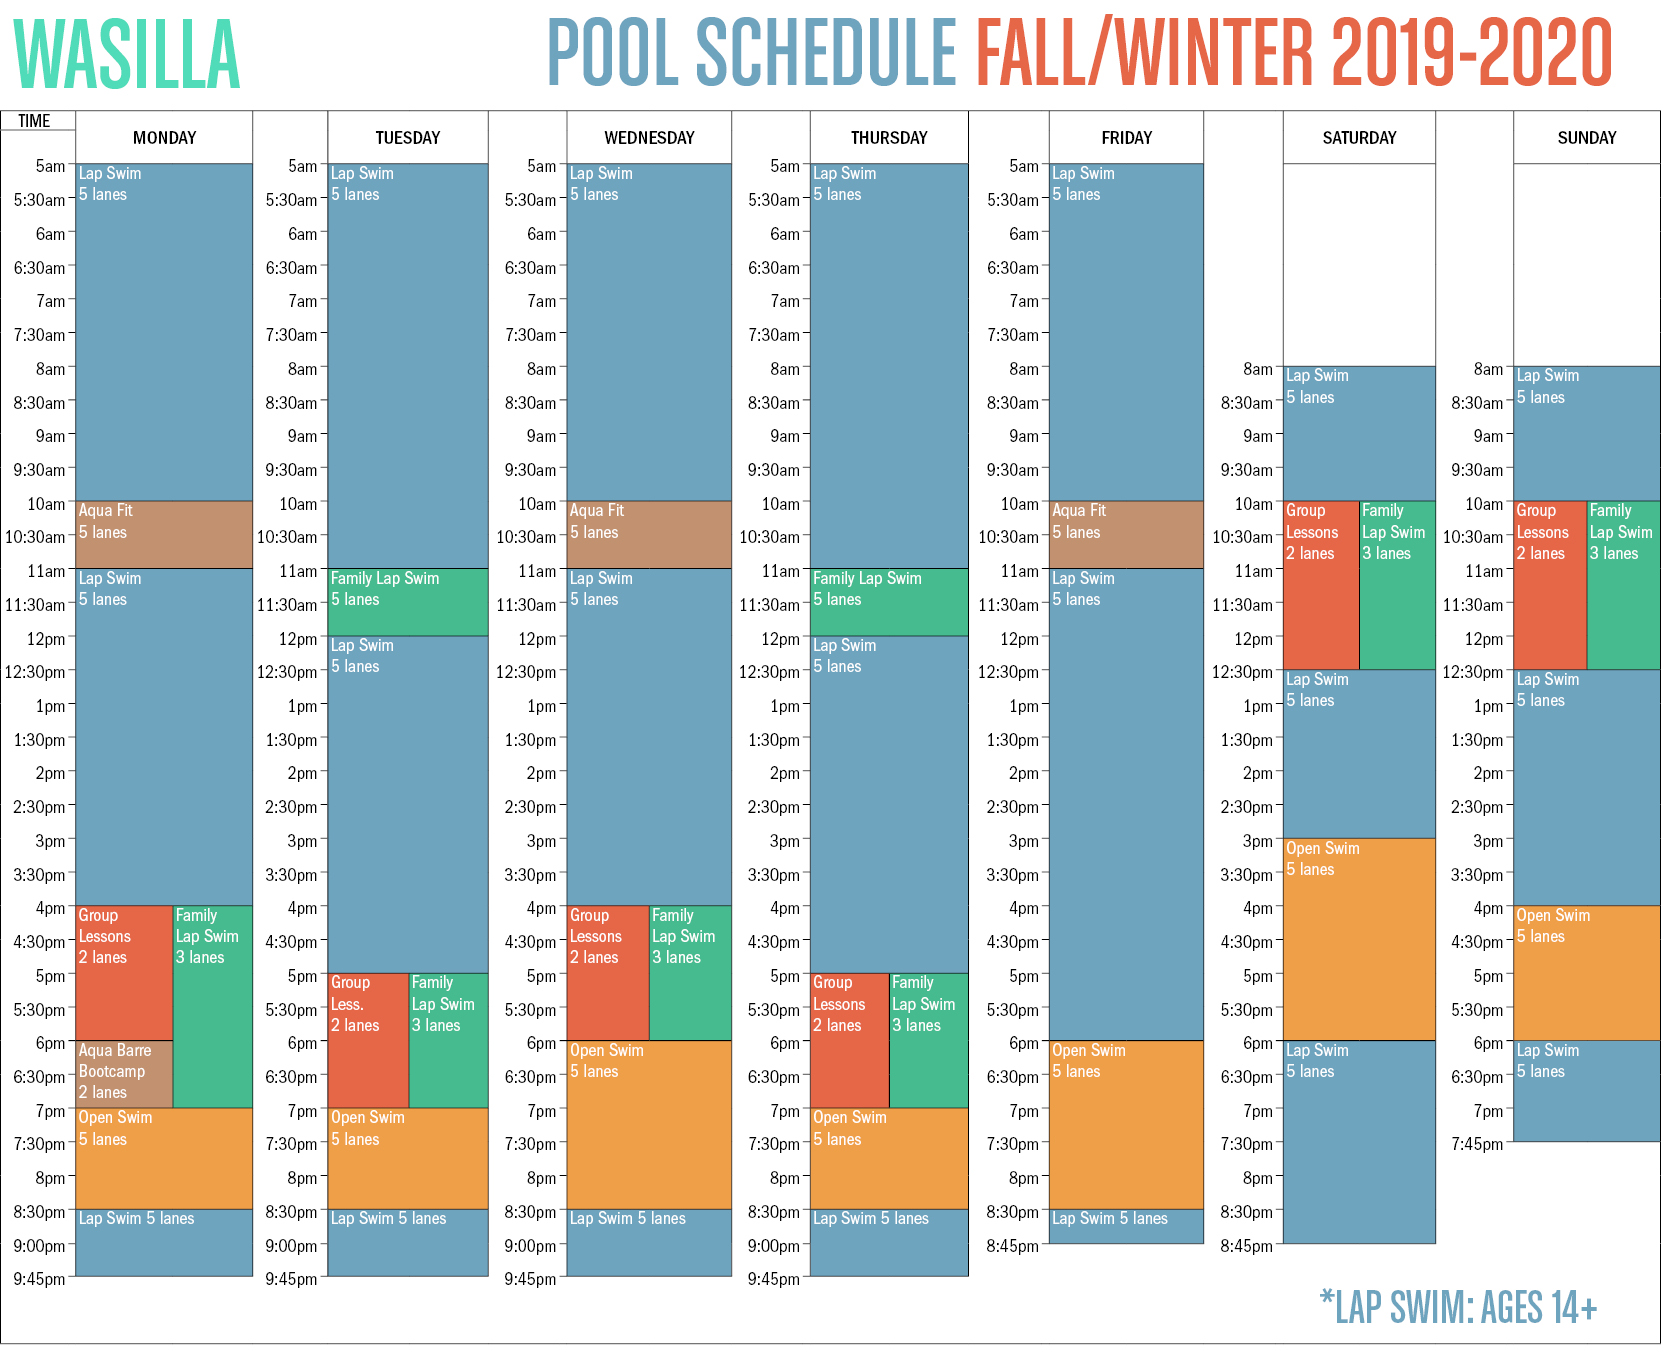 Q4-Q1 Fall-Winter Wasilla Pool Schedule [WEB]